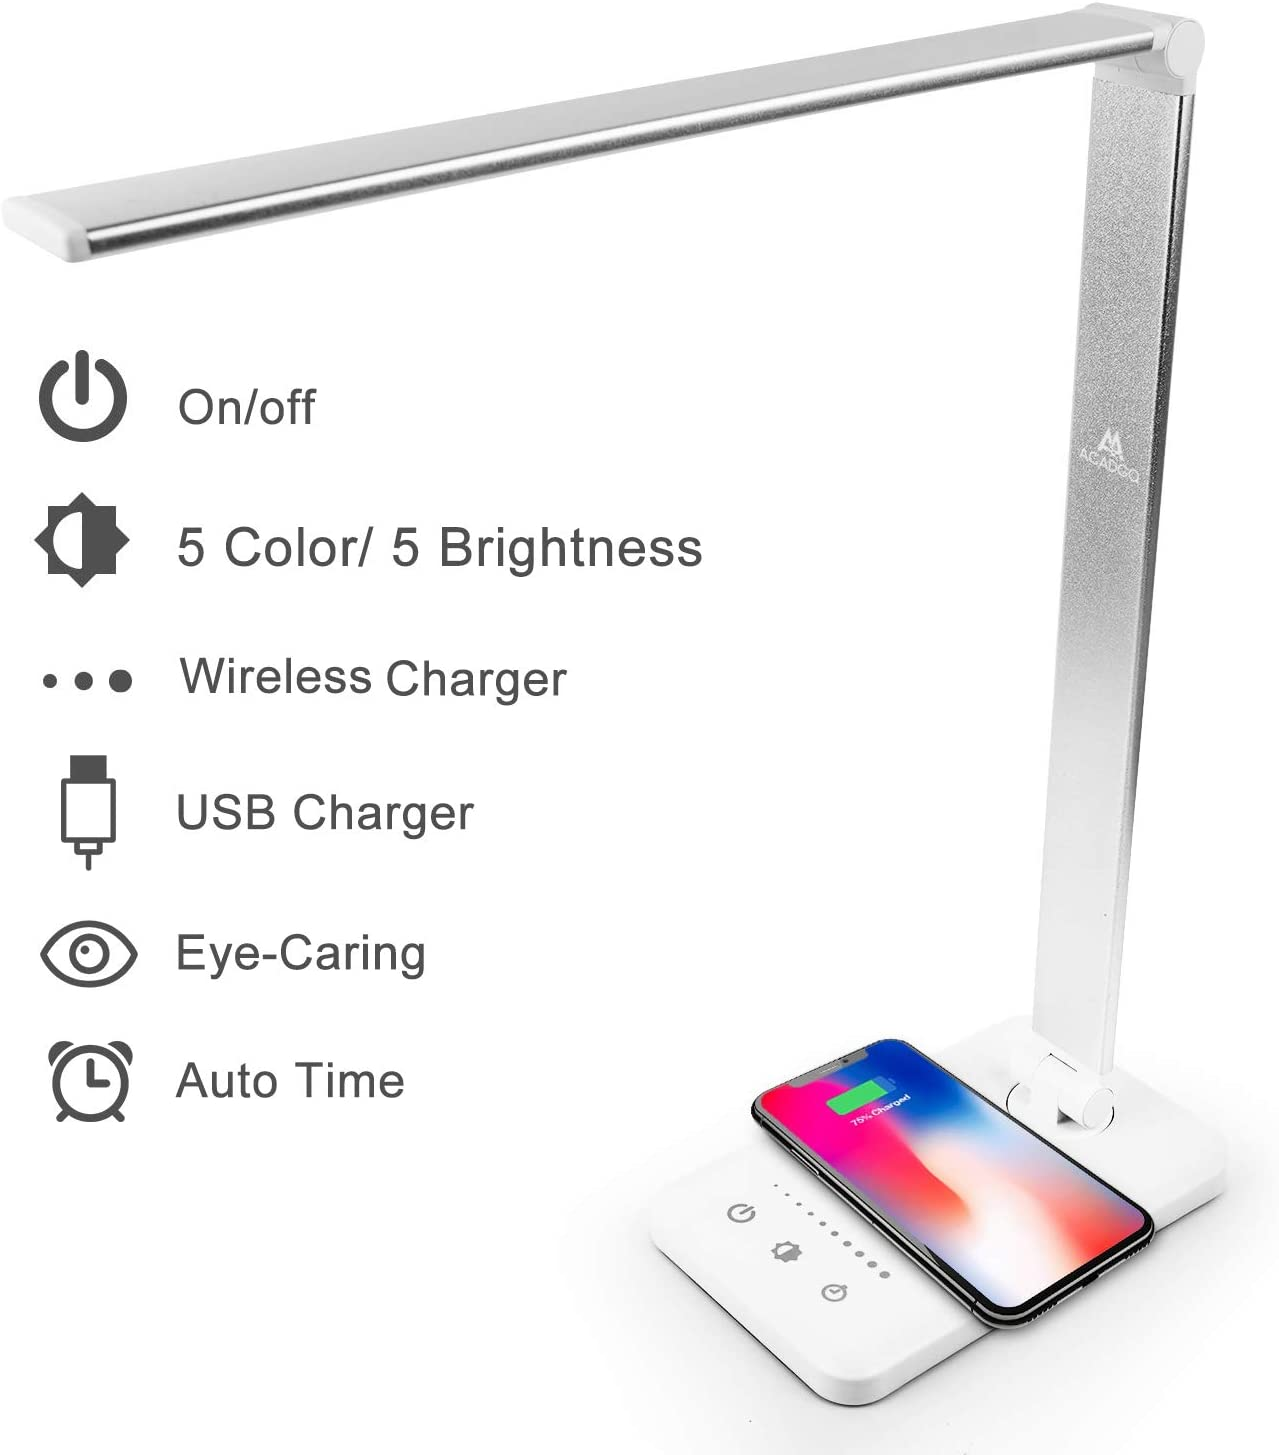 LED Desk Lamps for Home, Touch Control Desktop Lamp with Wireless Charger, USB Charging Port, Timing, 5 Colors Lighting and Sliding Touch Dimming, Folding Design Office Reading Light for Bedroom, Dorm